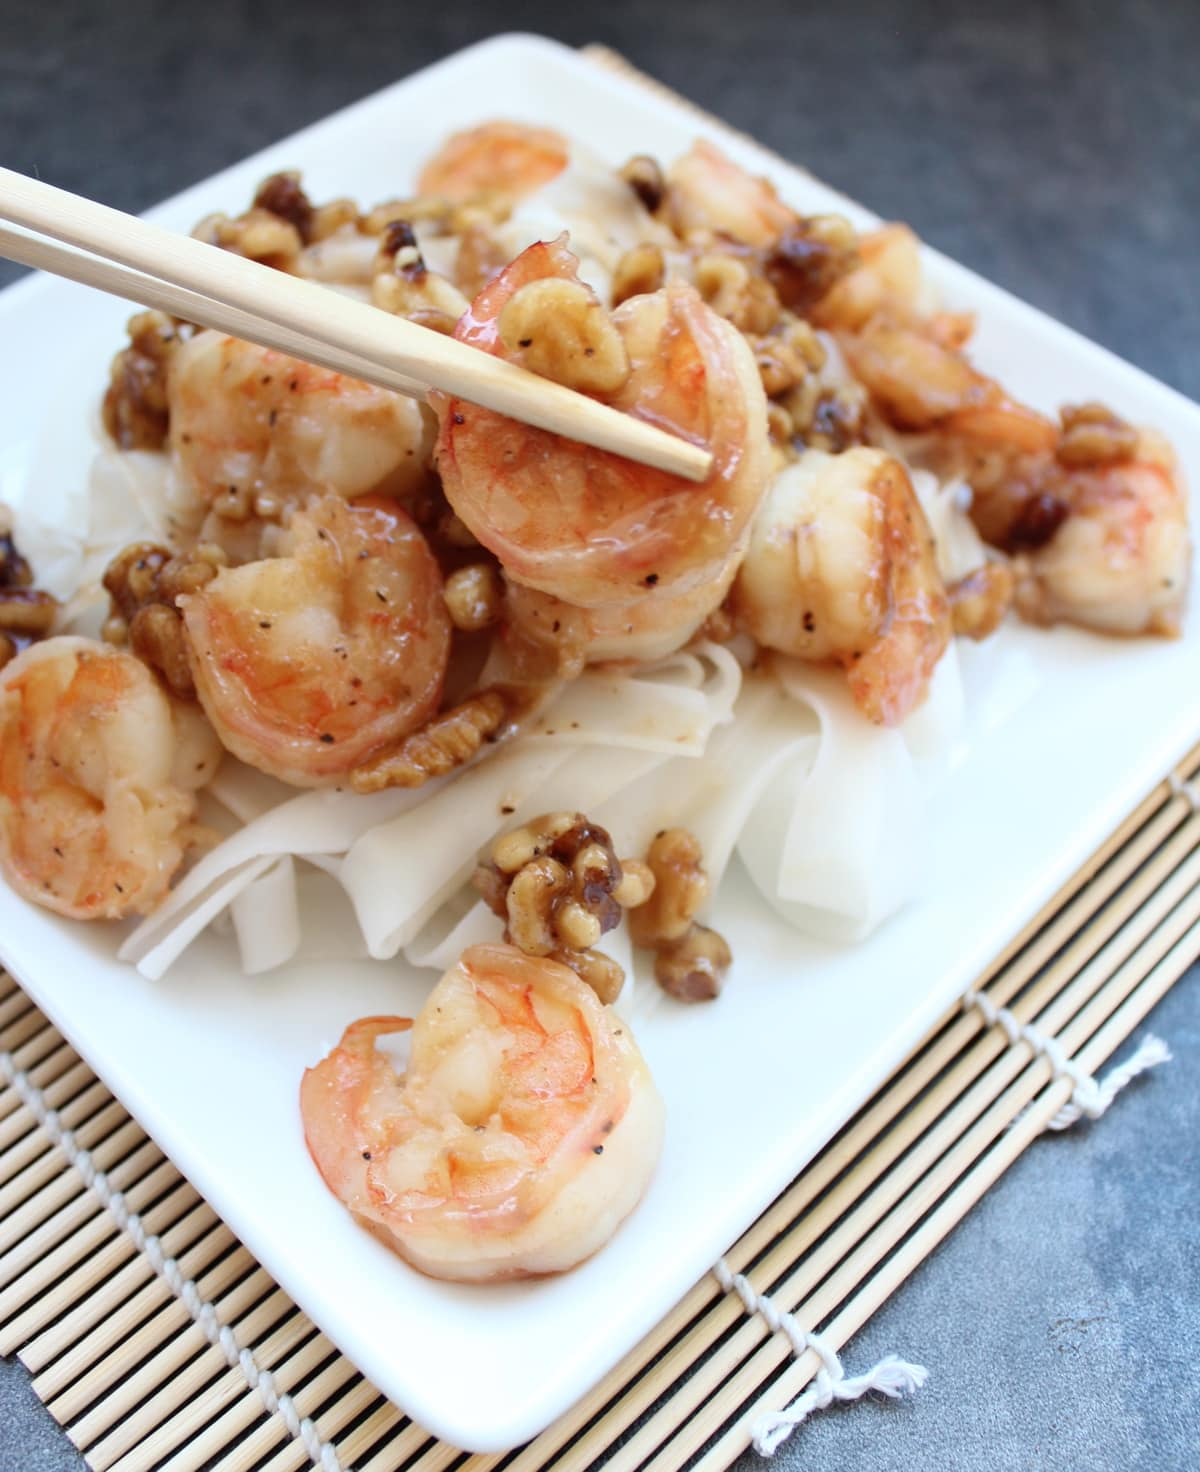 The Chinese restaurant favorite, Honey Walnut Shrimp, is made ...